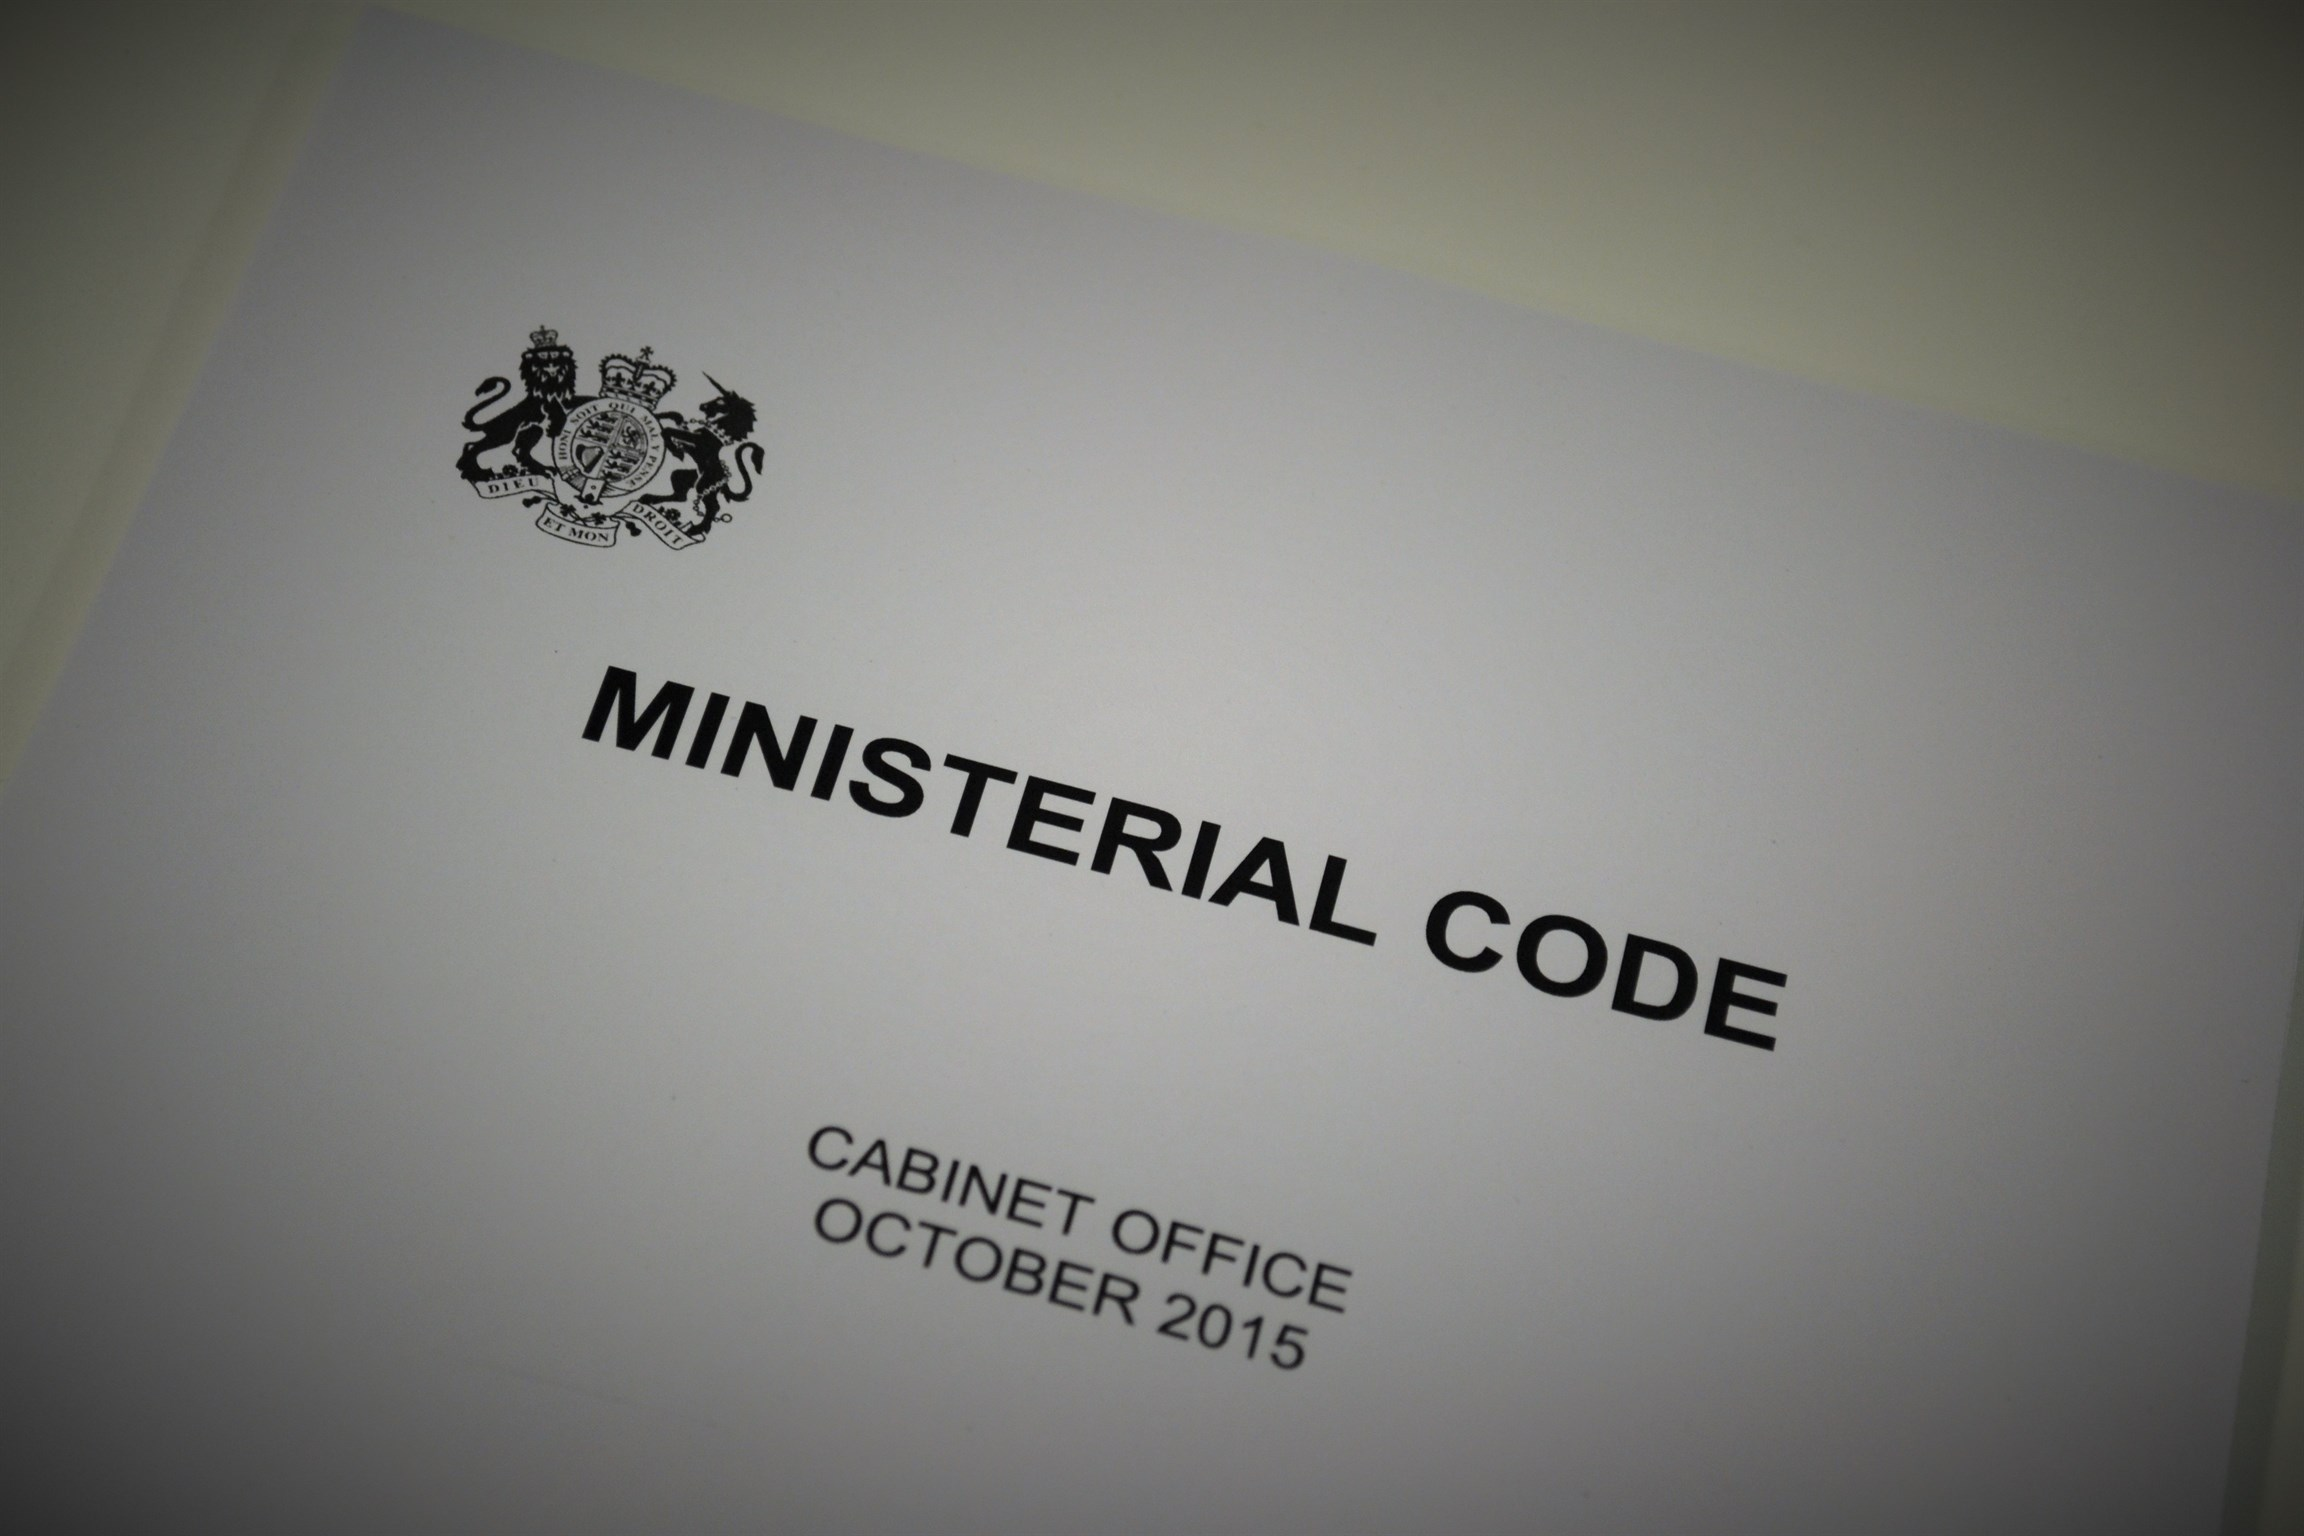 Opg public guardian me the carer ministerial code book written by him fandeluxe Choice Image